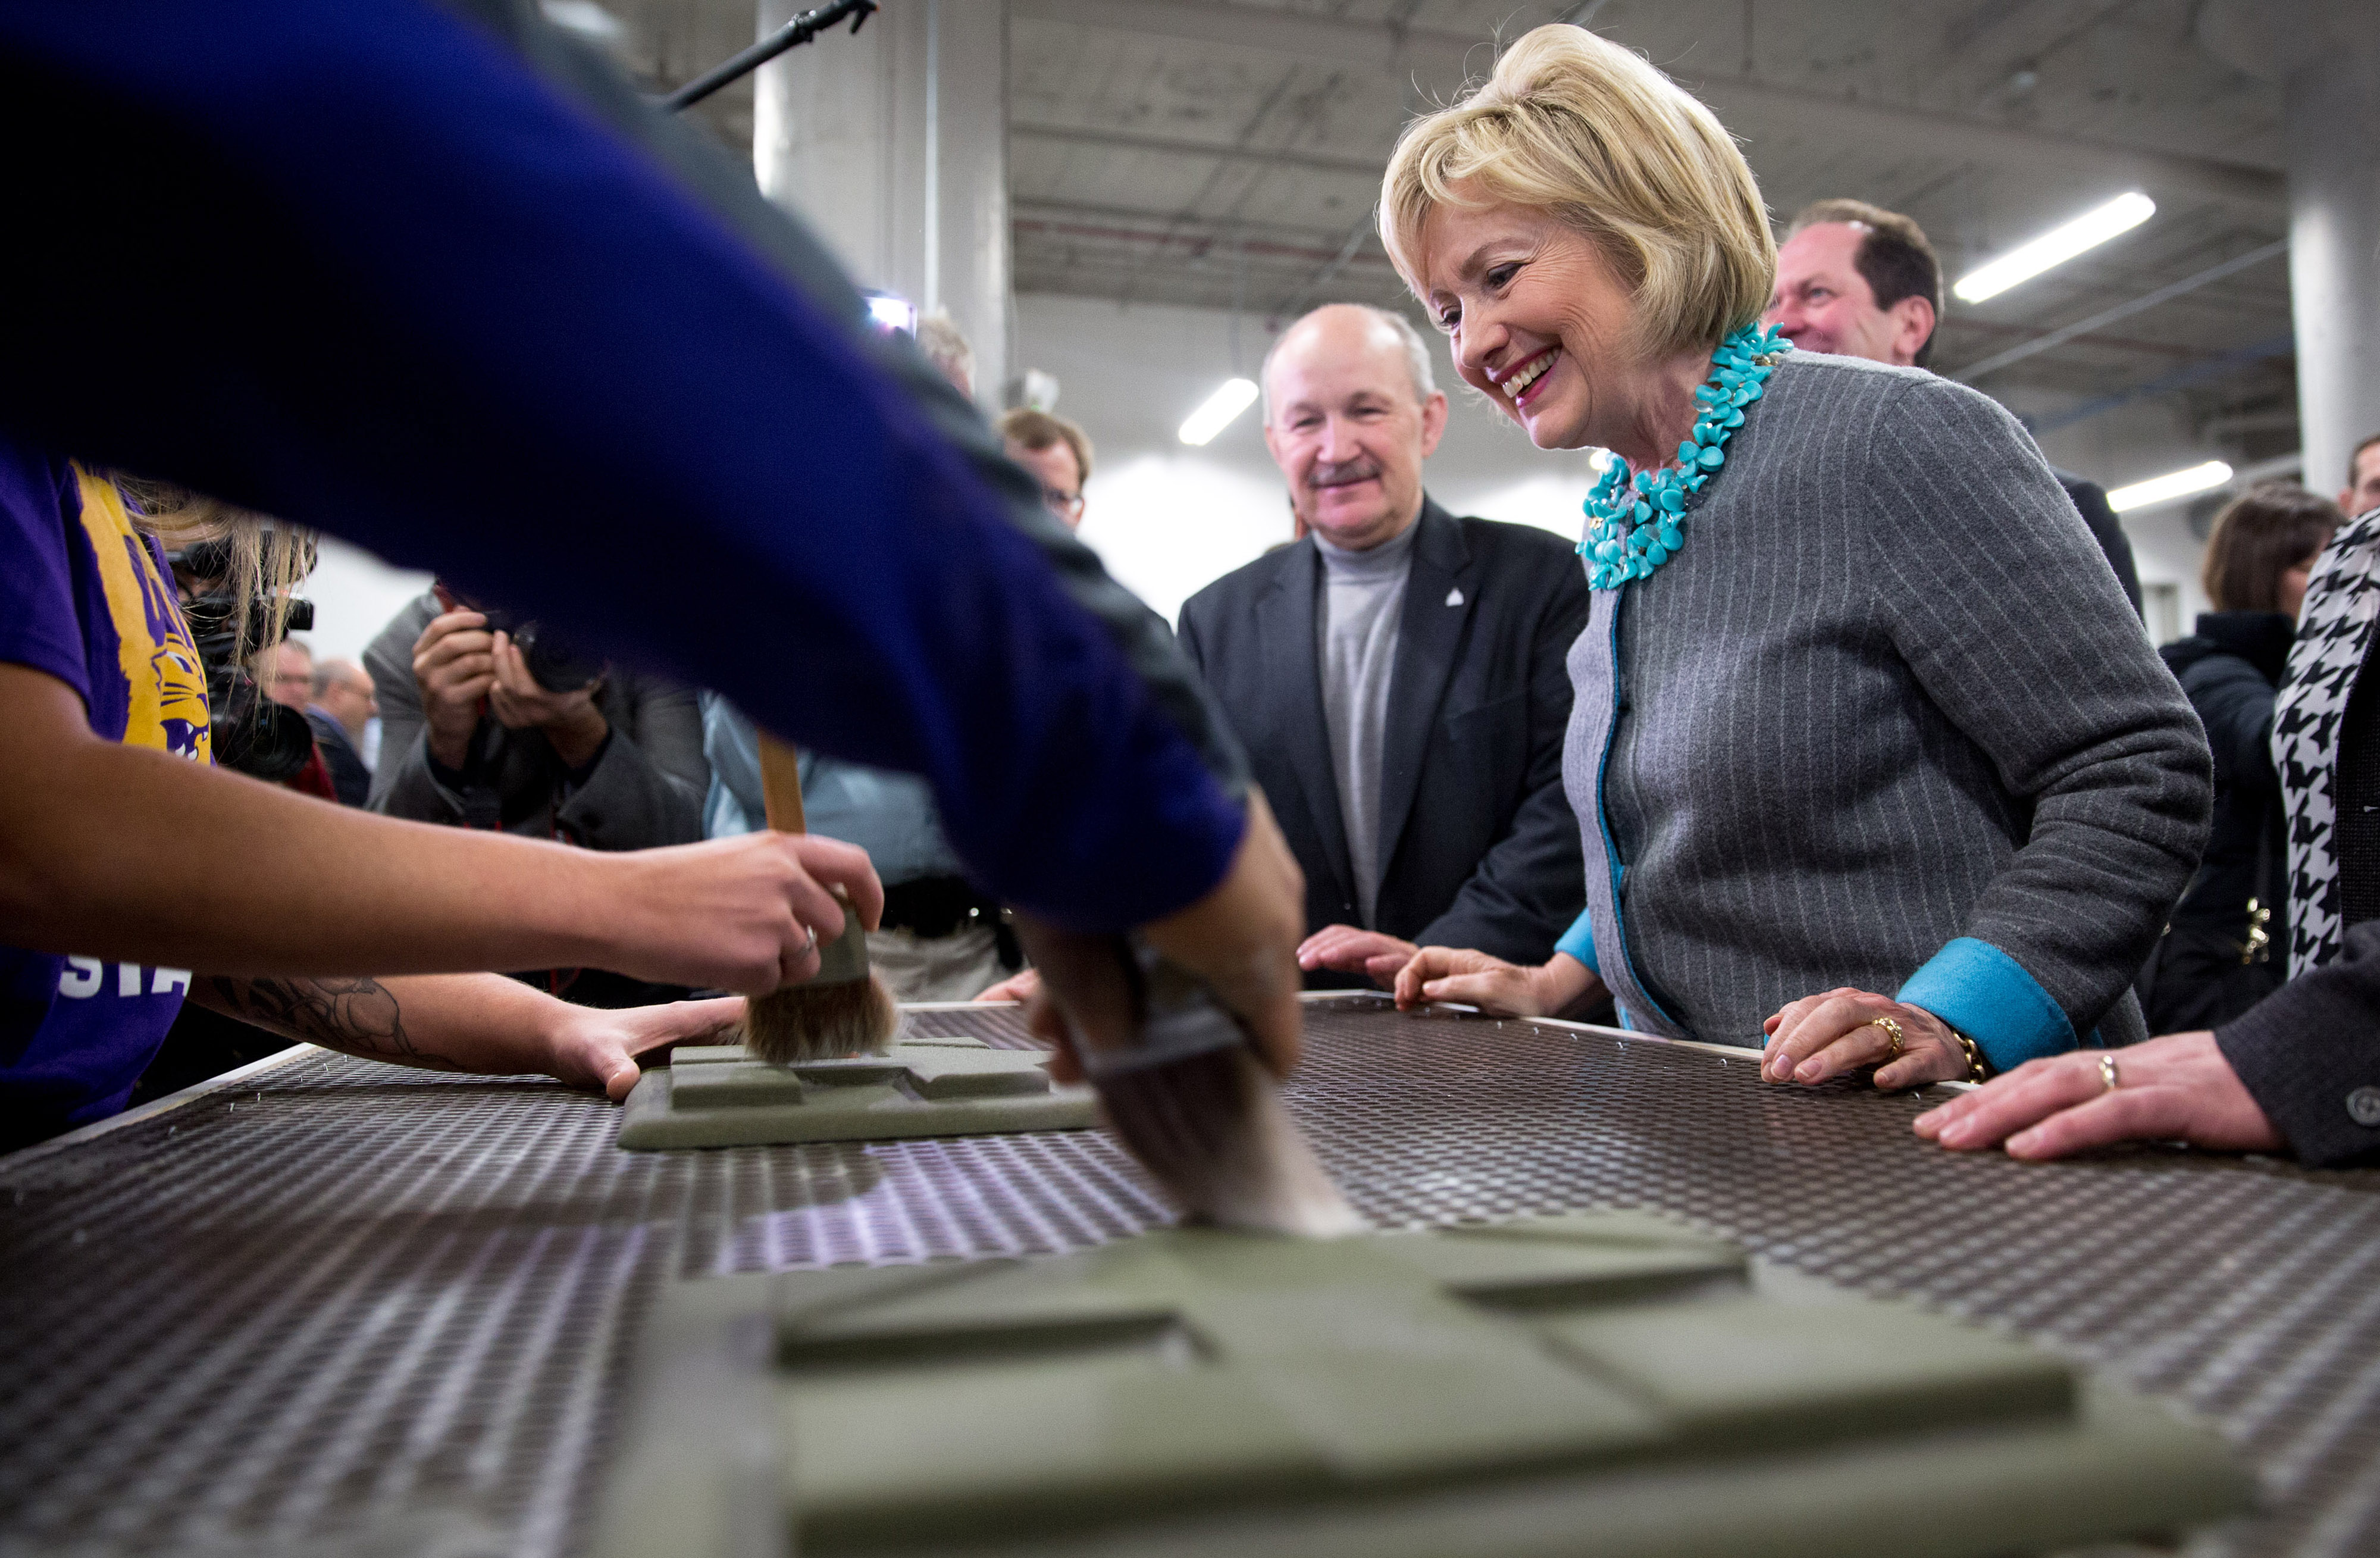 Hillary Clinton, former Secretary of State and 2016 Democratic presidential candidate, watches as students clean off 3D printed campaign logos made for her during a tour of the University of Northern Iowa's Additive Manufacturing Center at Cedar Valley TechWorks in Waterloo, Iowa, U.S., on Wednesday, Dec. 9, 2015.